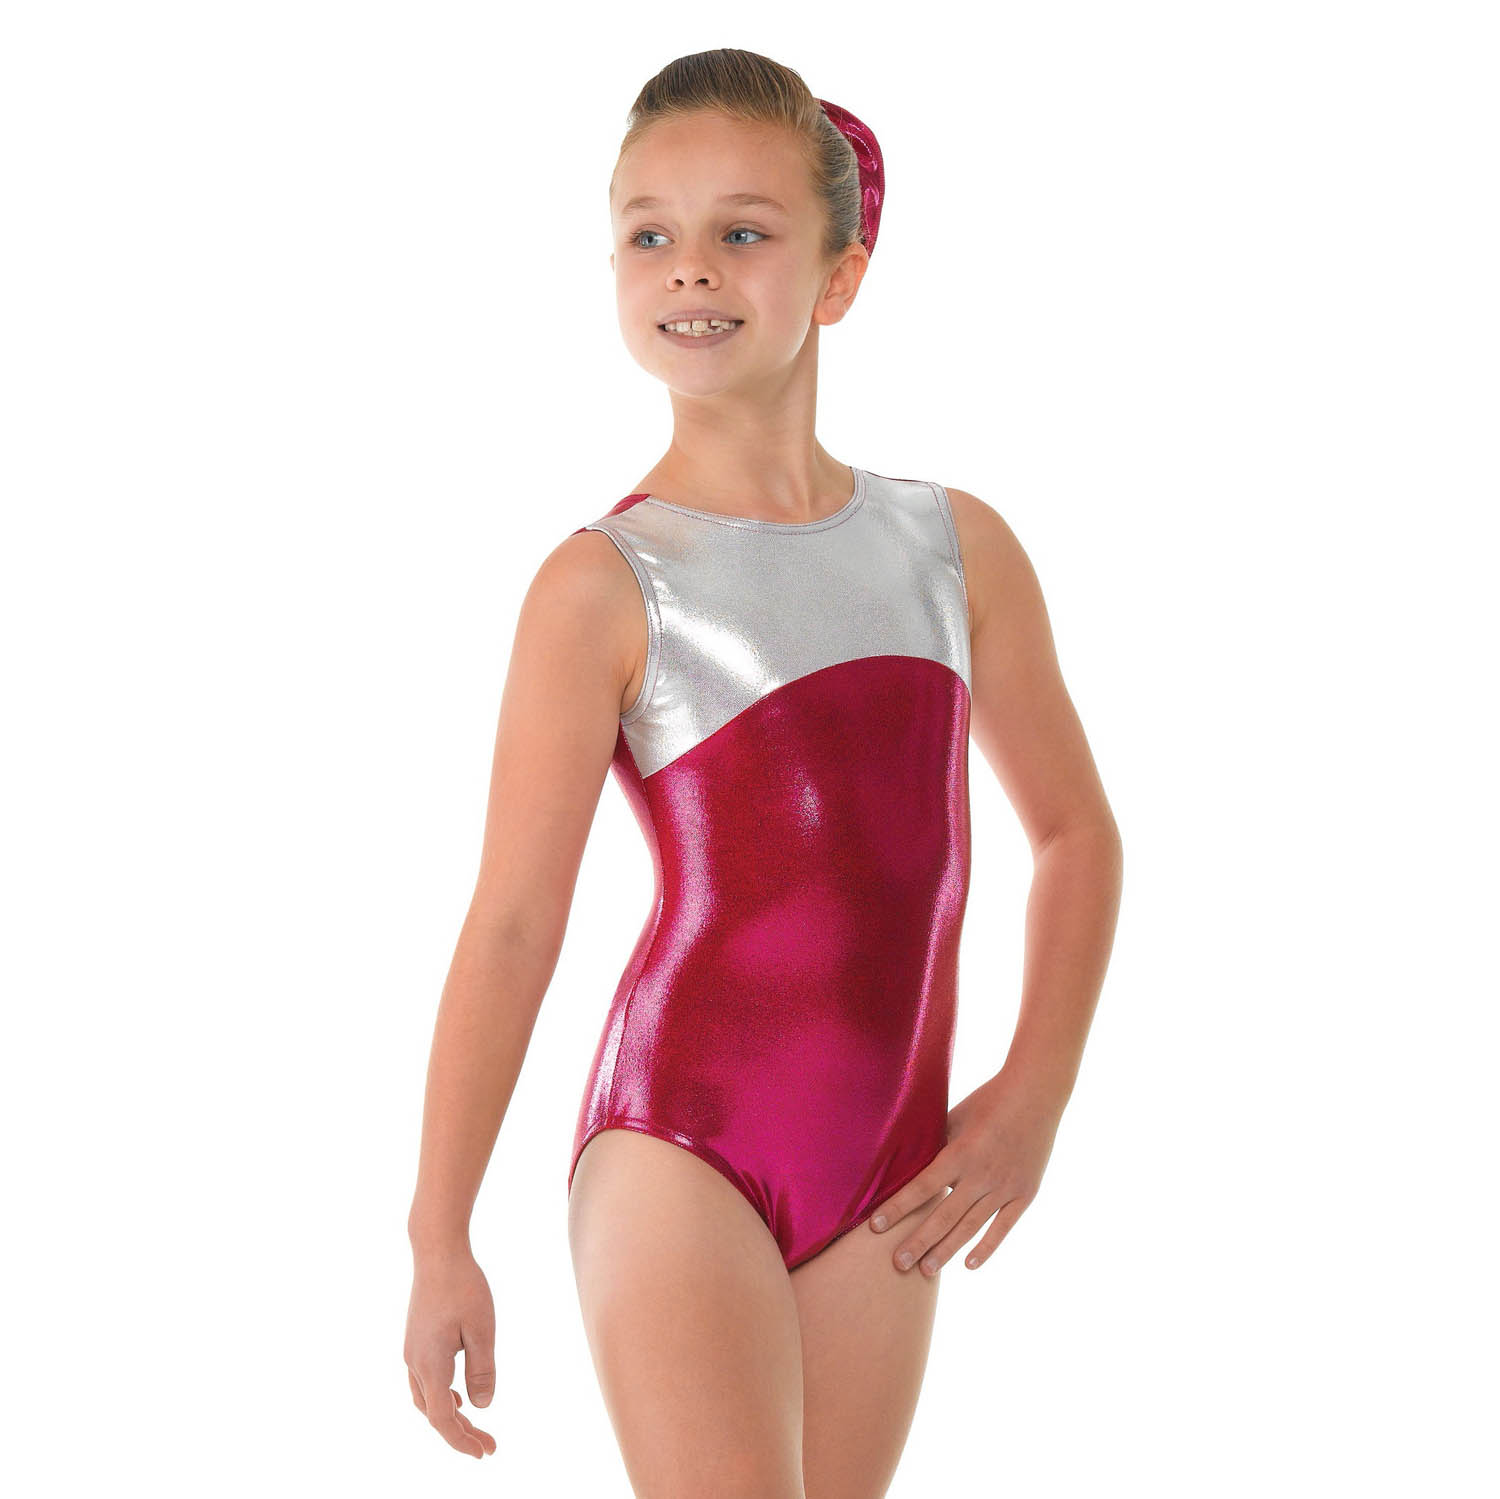 Outfit your dance students in beautiful dance costumes for every genre from ballet, tap and jazz, to lyrical, hip-hop and gymnastics at deeply discounted prices. Discover a wide range of dance apparel including leotards, tops, shorts, leggings, and dresses.